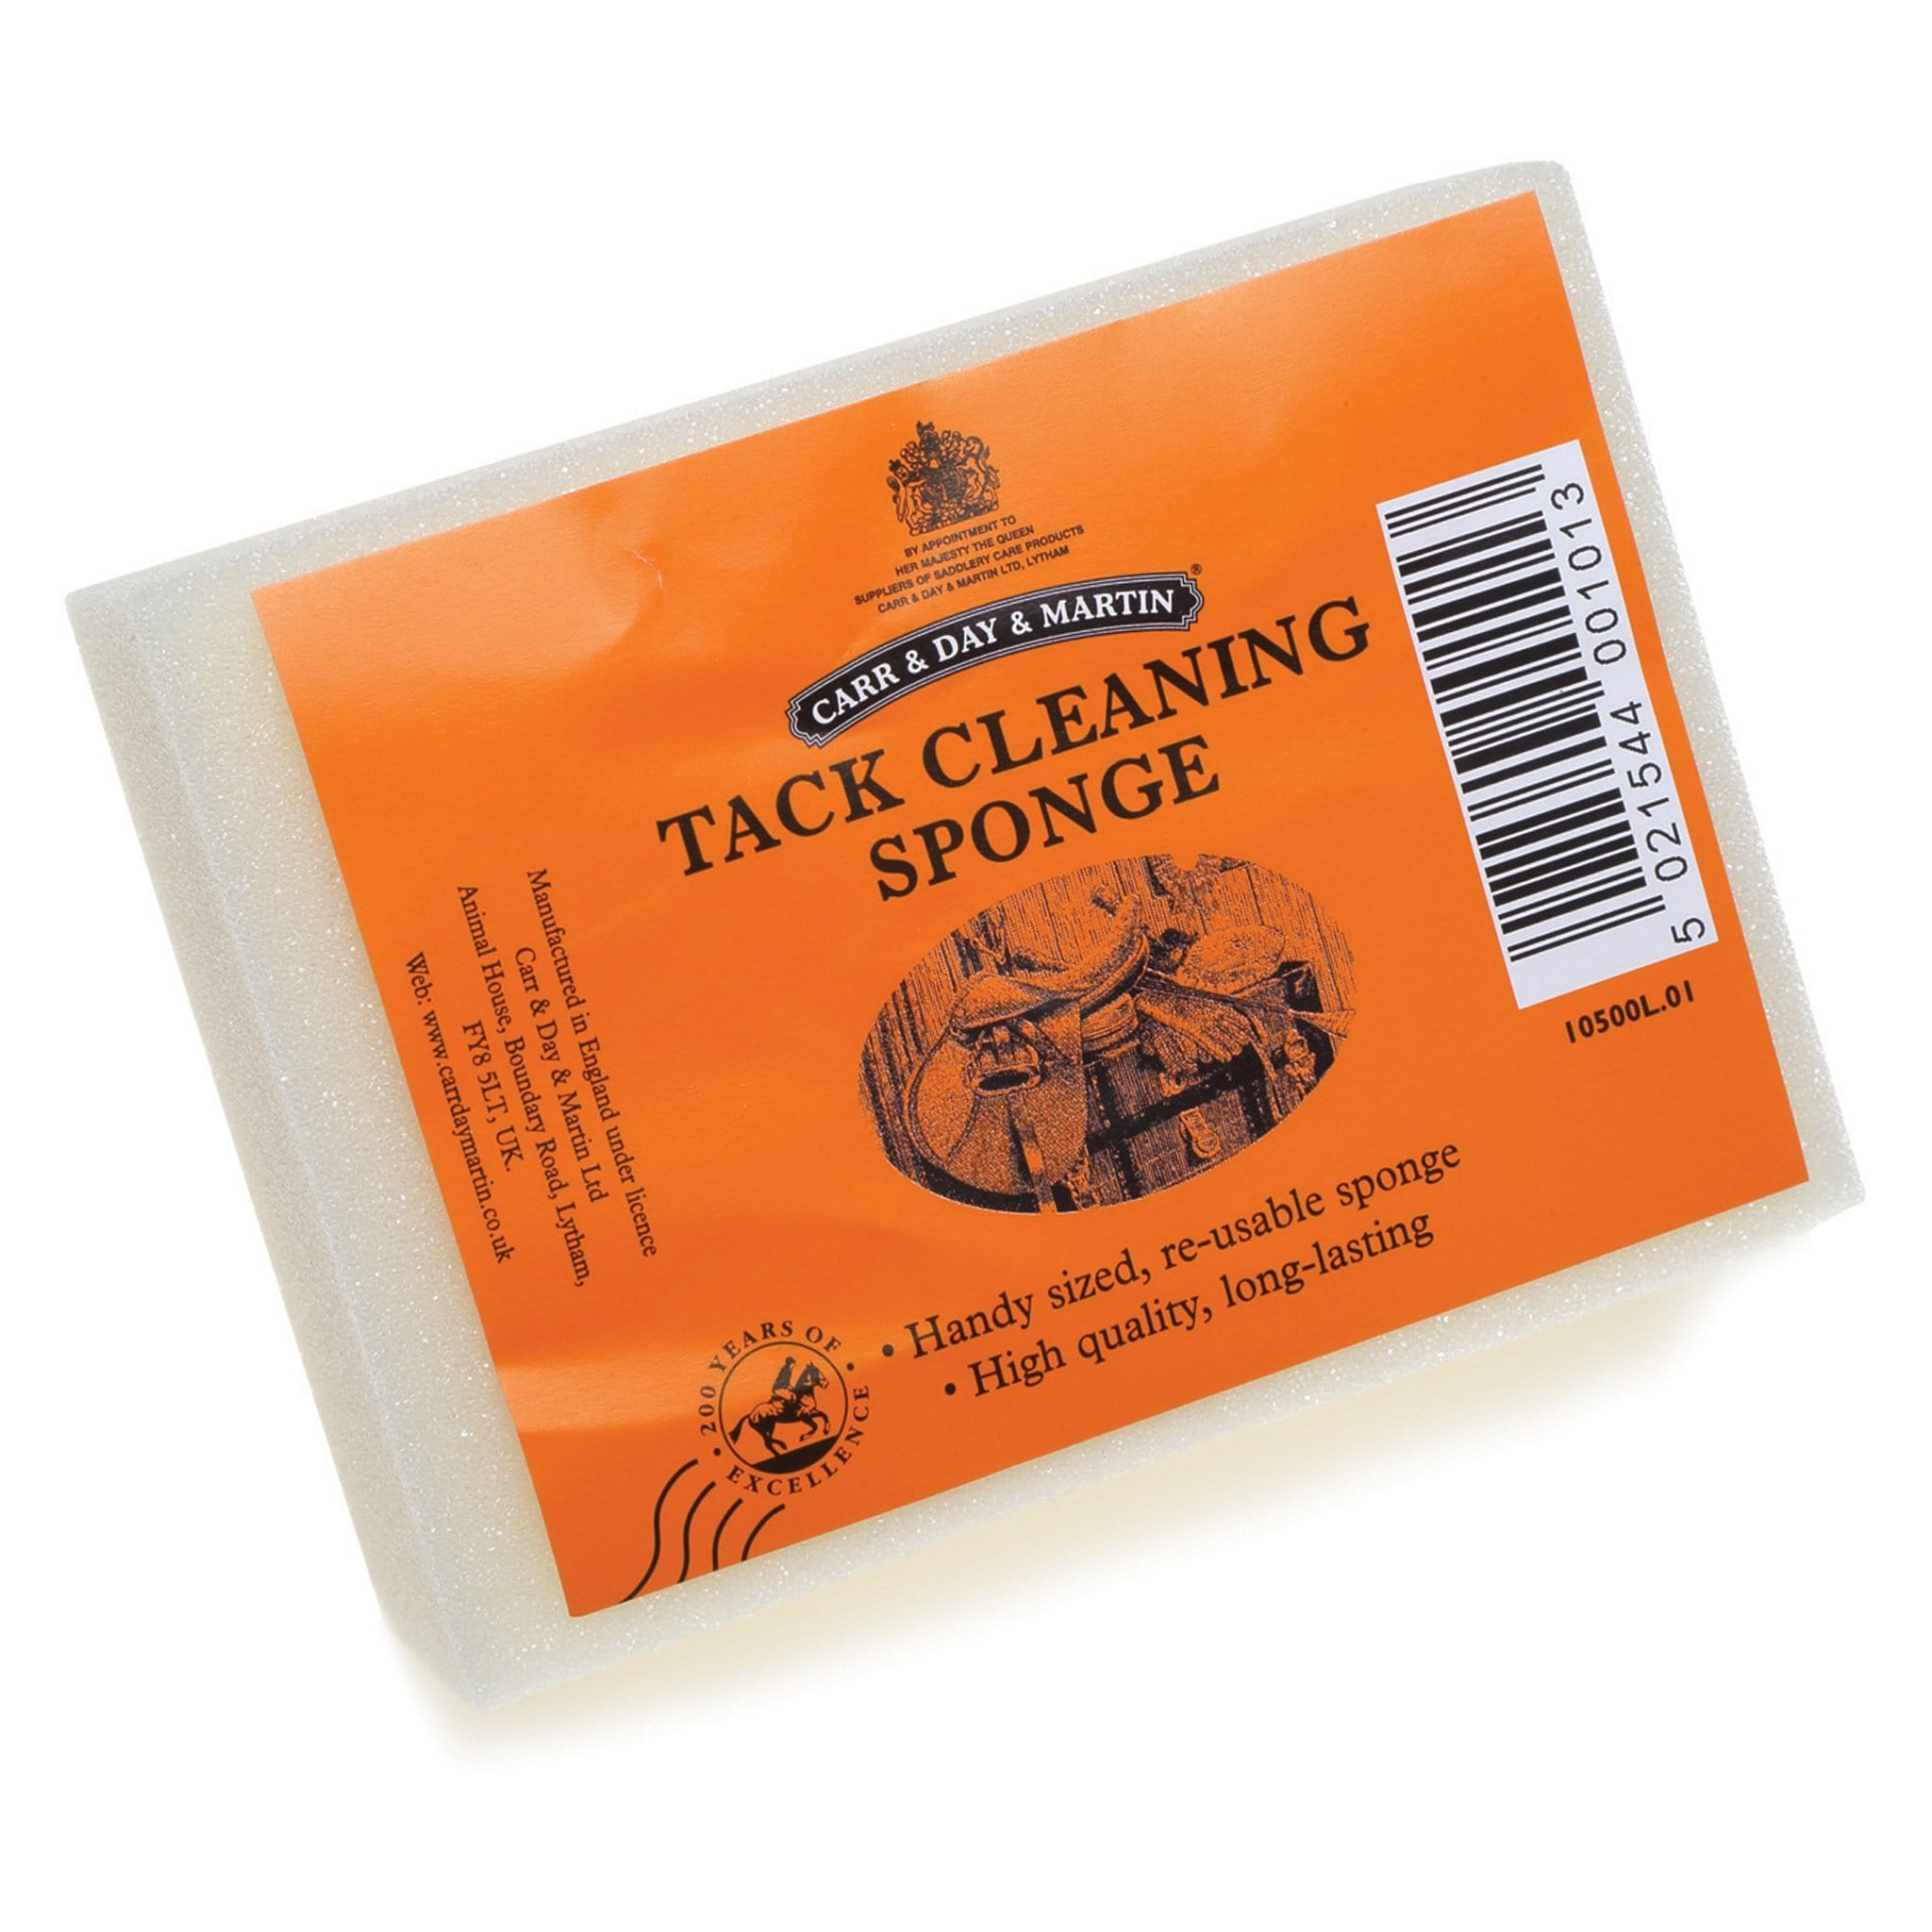 Carr & Day & Martin Tack Cleaning Sponge 7320